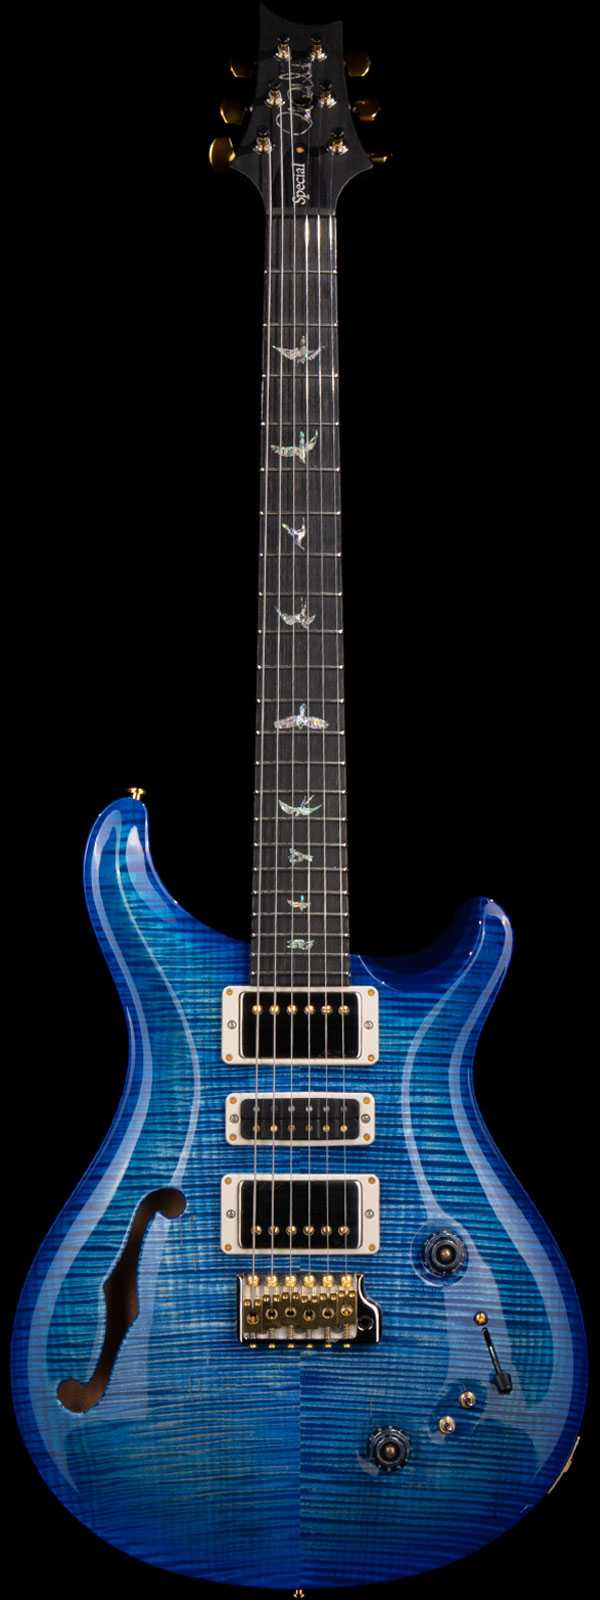 PRS Special 22 Semi-Hollow Artist Flame Maple Top Blue Burst